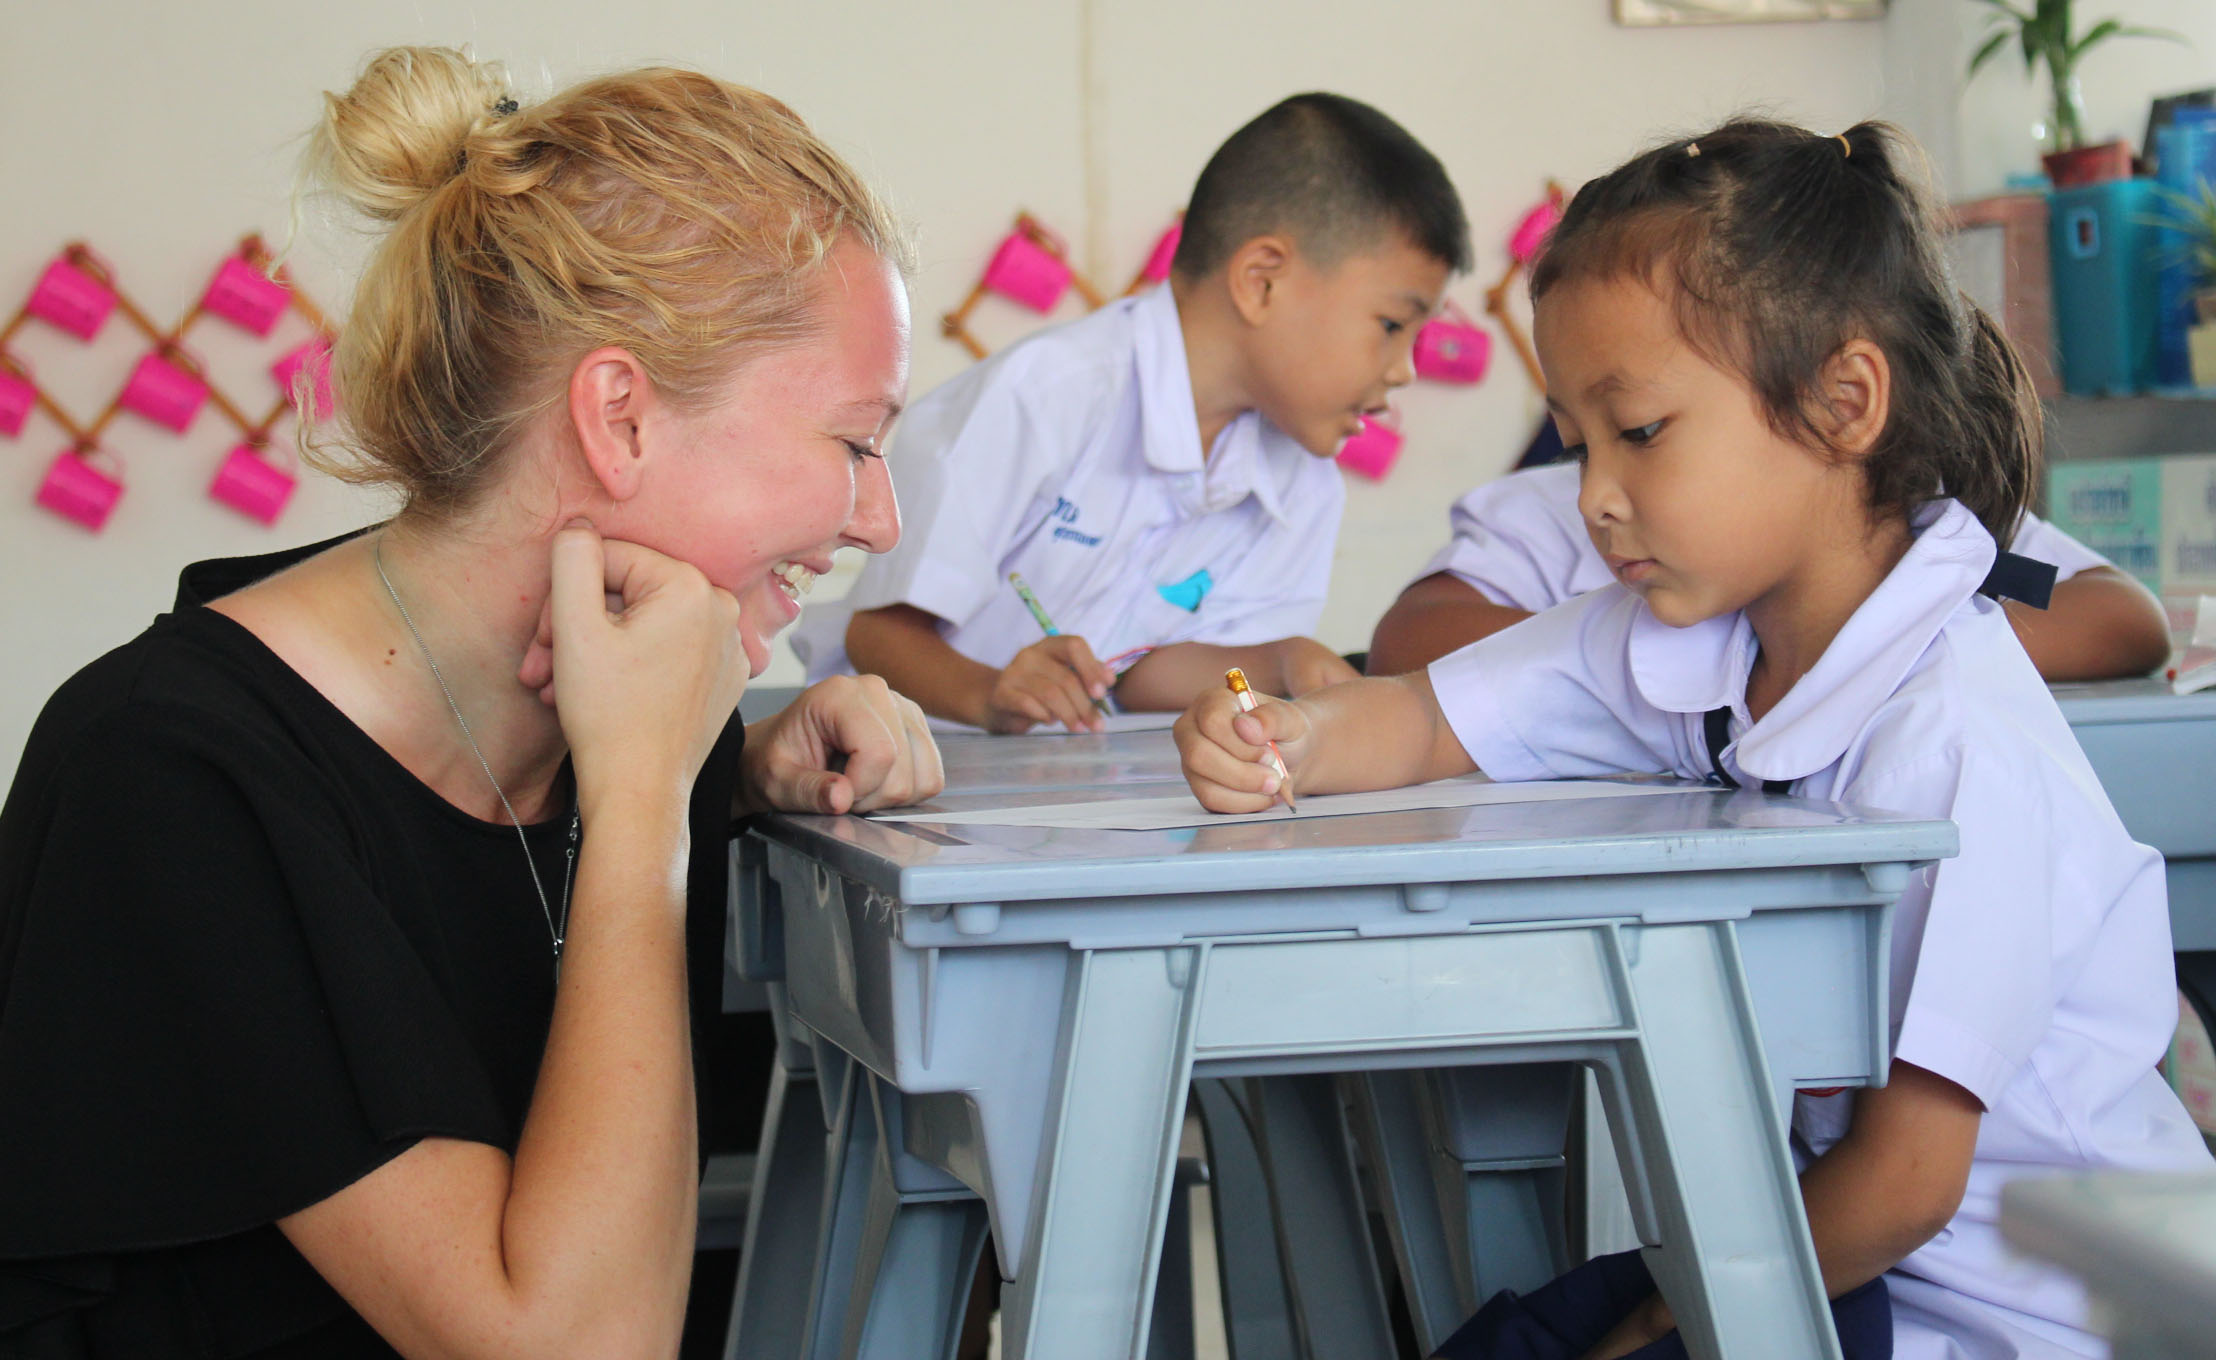 TEFL students